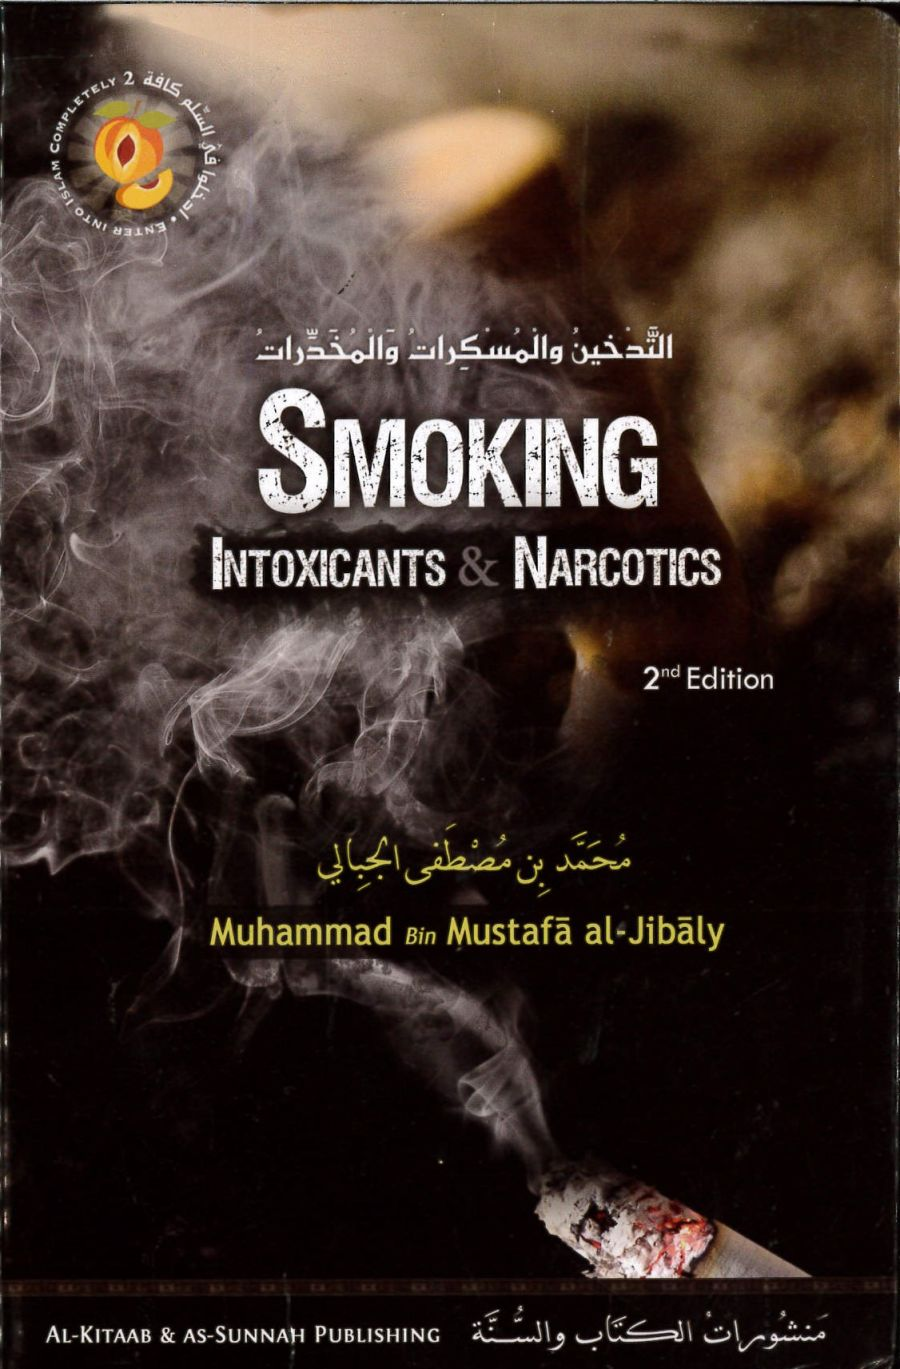 Smoking: A Social Poison by Dr Muhammed Al-Jibaly